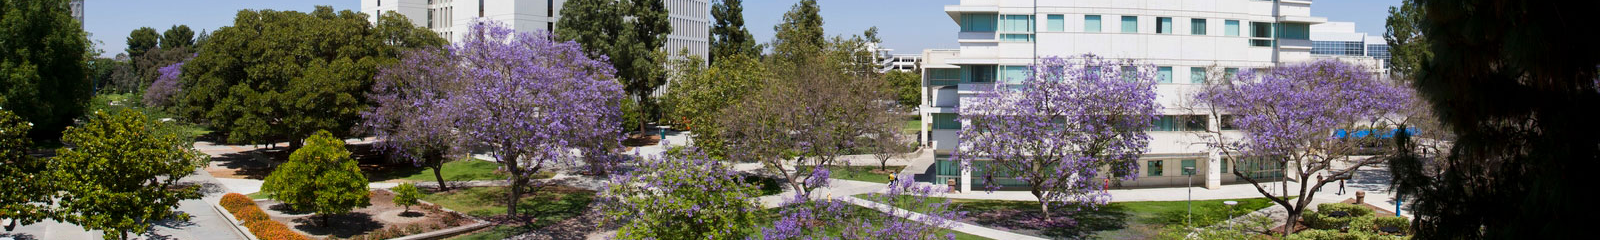 CSUF Campus Human Services Bldg